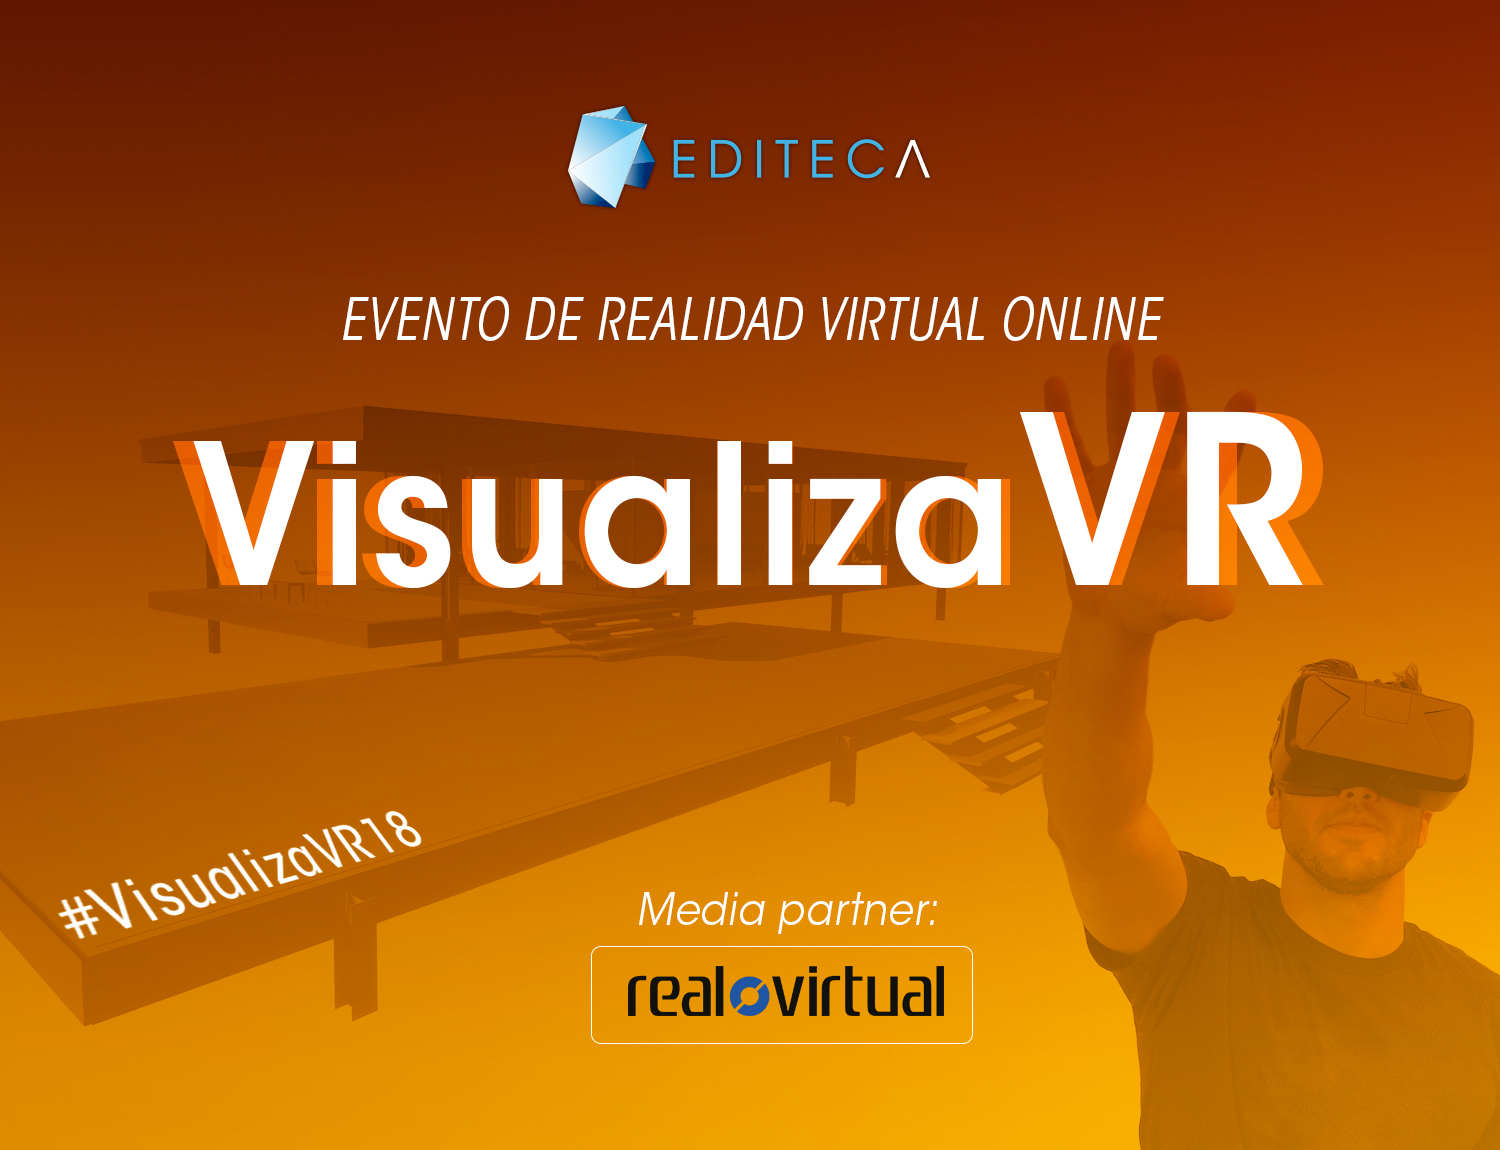 cabecera-movil-evento-visualizaVR-18-EDITECA